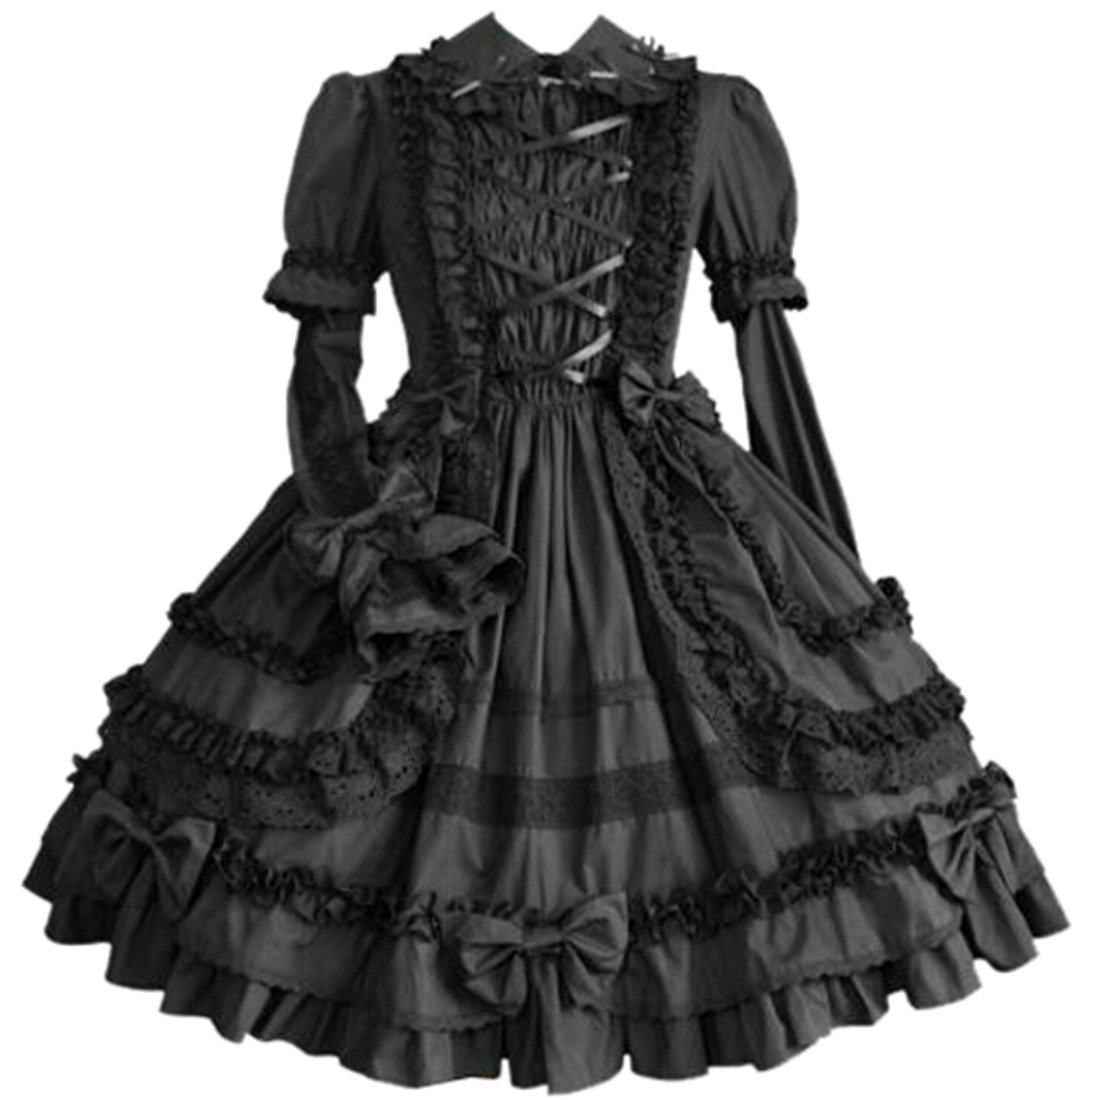 Partiss Women Long Sleeve Multi Layer Sweet Lolita Gothic Lolita Dress, XS, Black